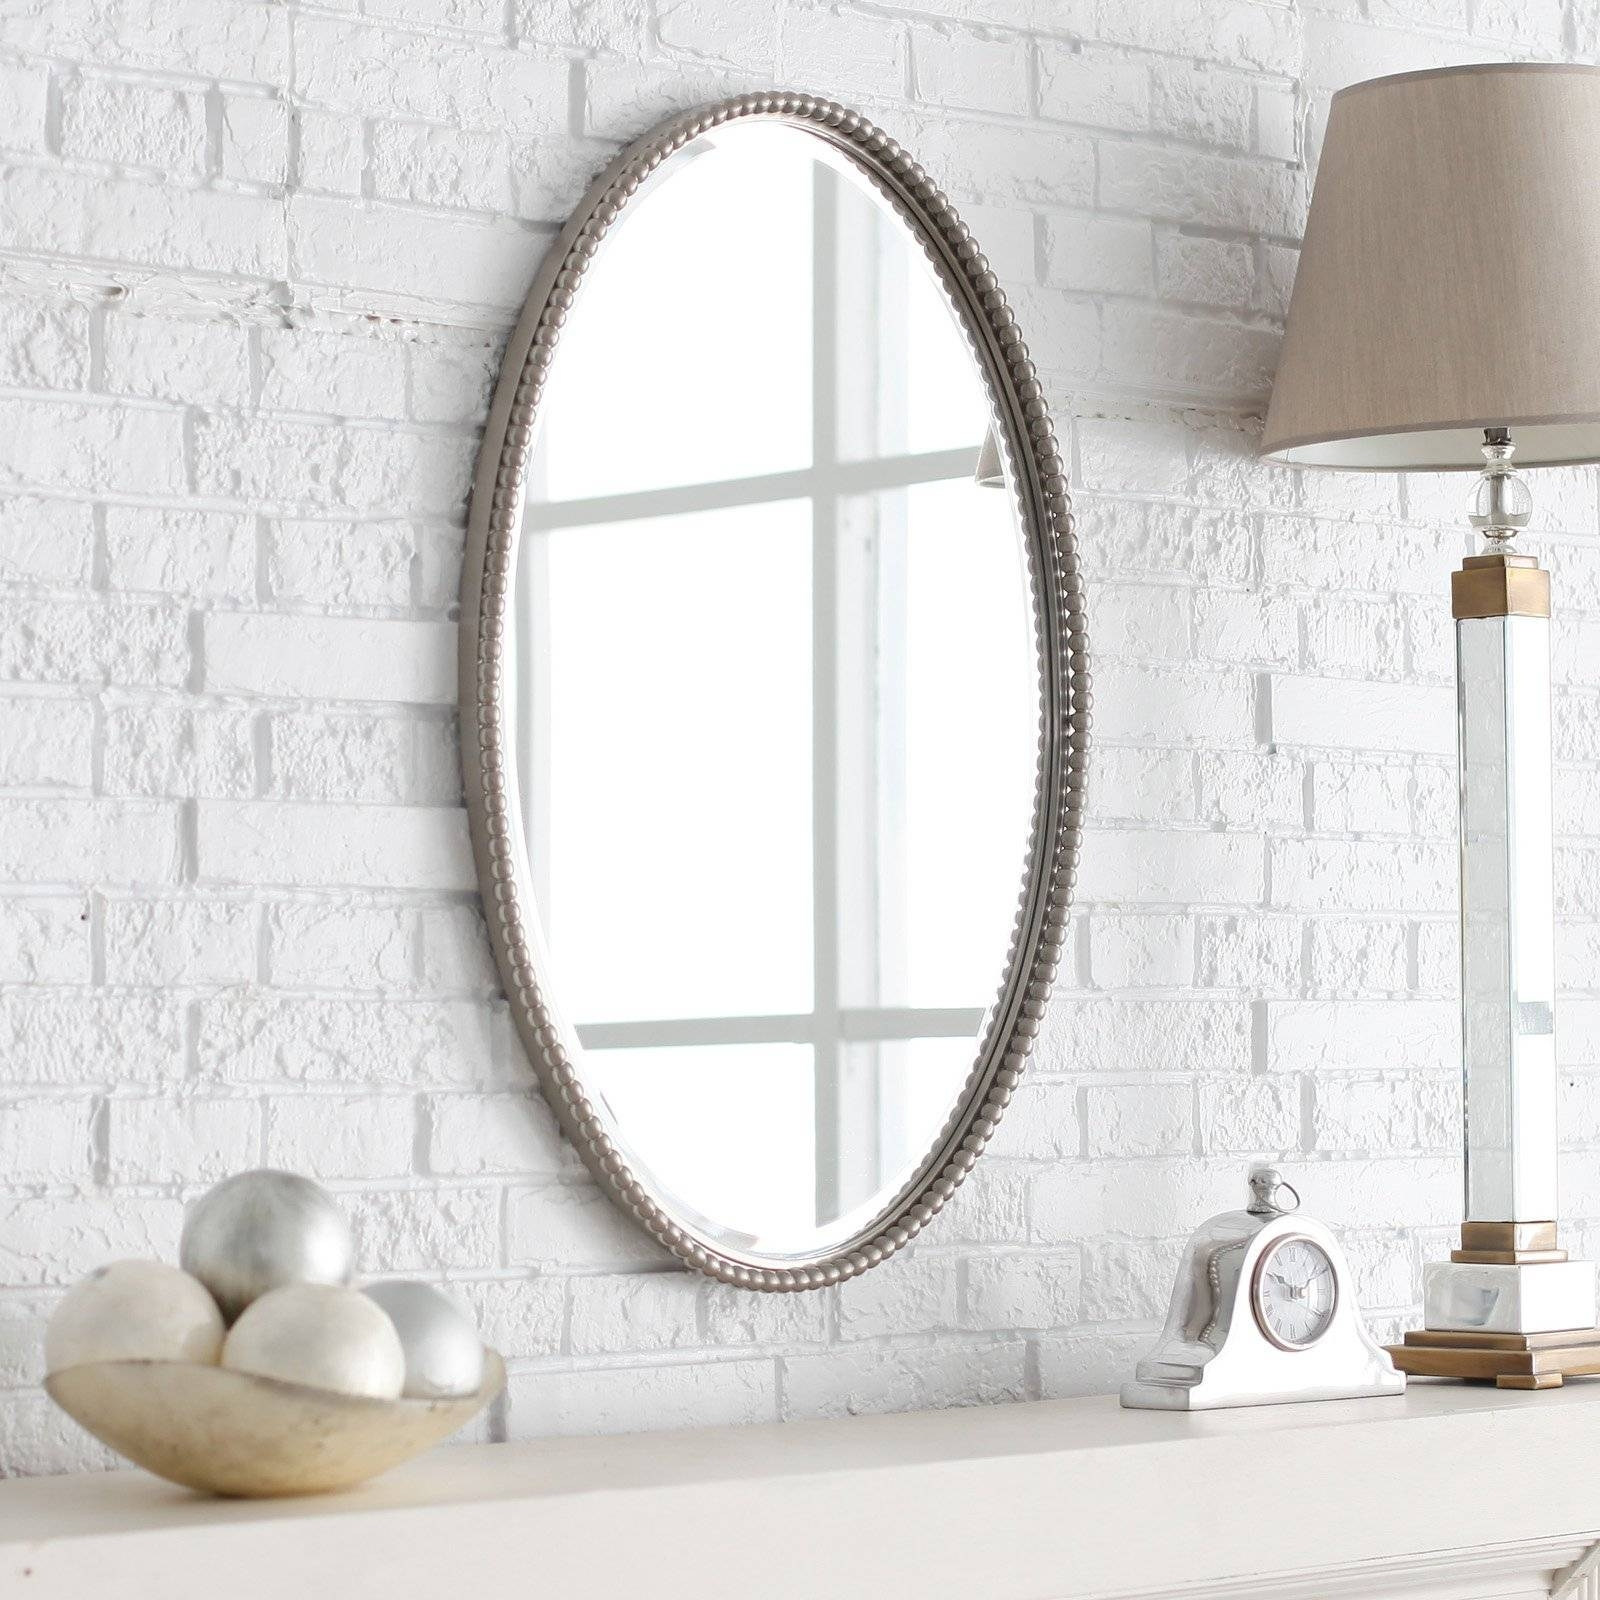 Uttermost Frameless Oval Beveled Vanity Mirror | Hayneedle with regard to Oval Wall Mirrors (Image 25 of 25)